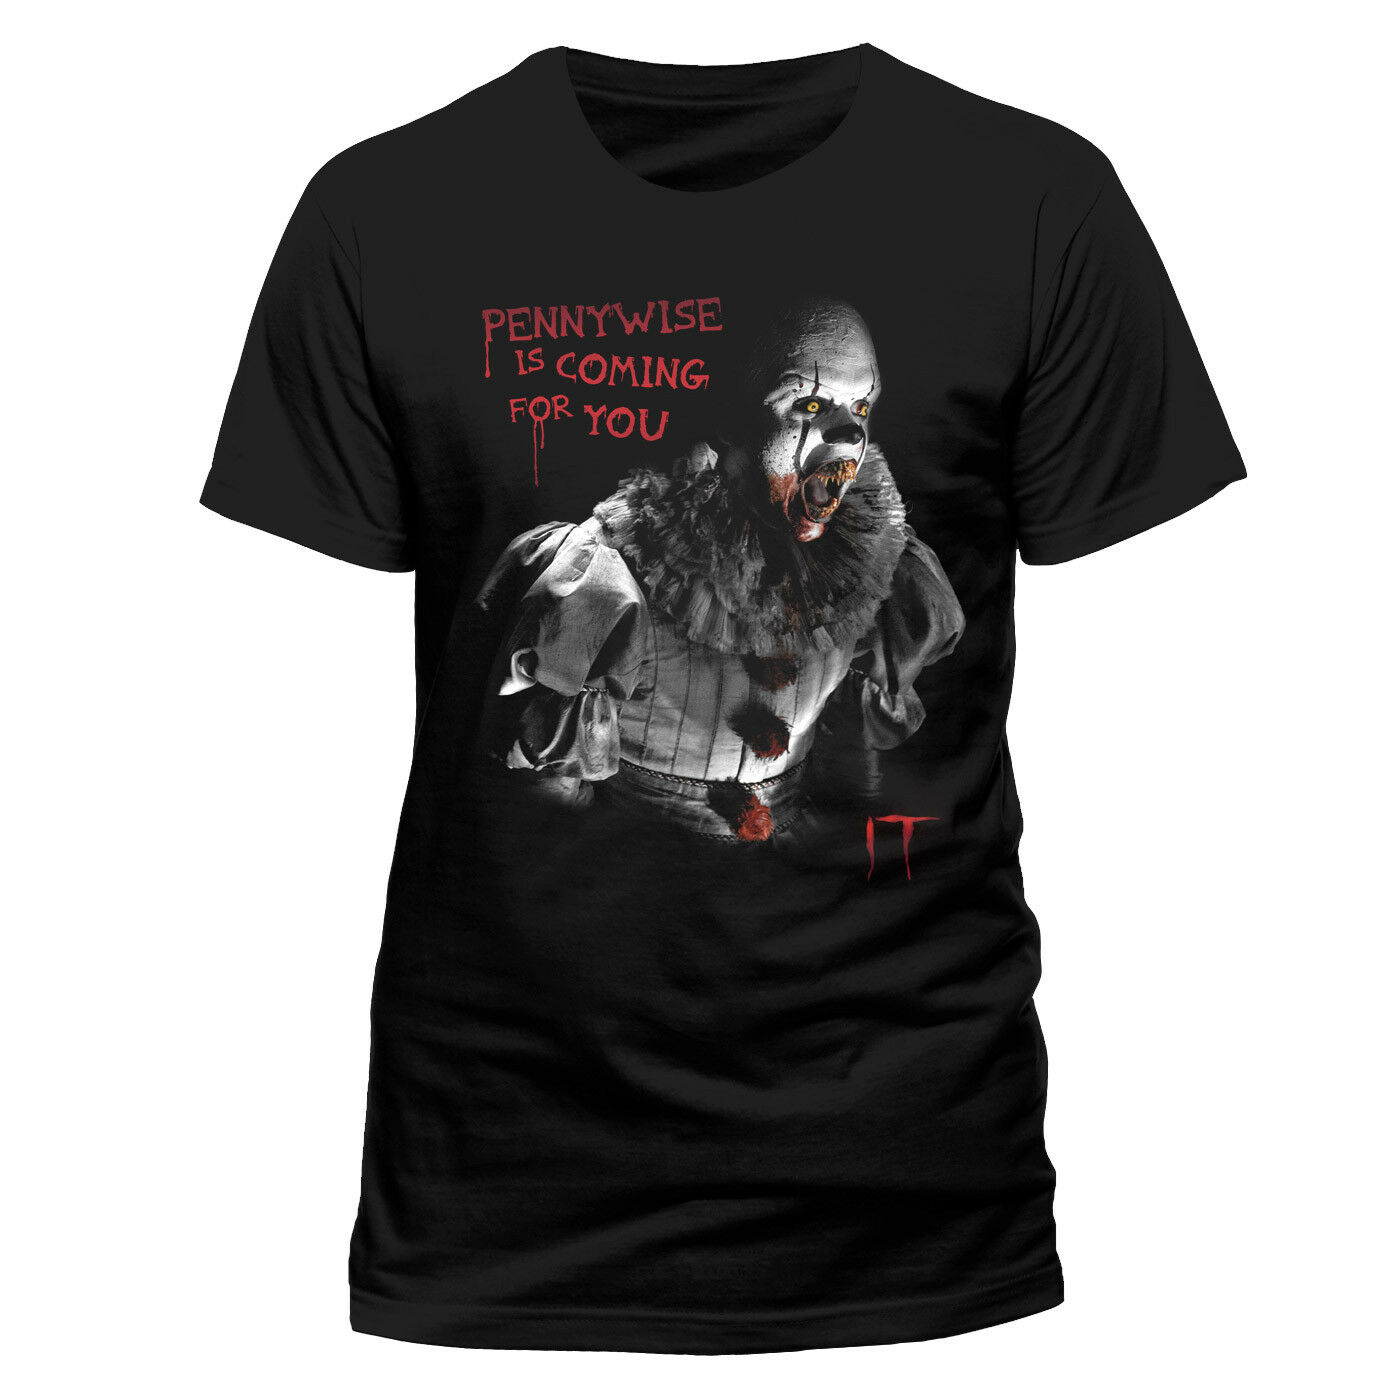 Official IT Movie Pennywise Is Coming For You T Shirt Black NEW S M L XL XXL Middle Aged top tee image